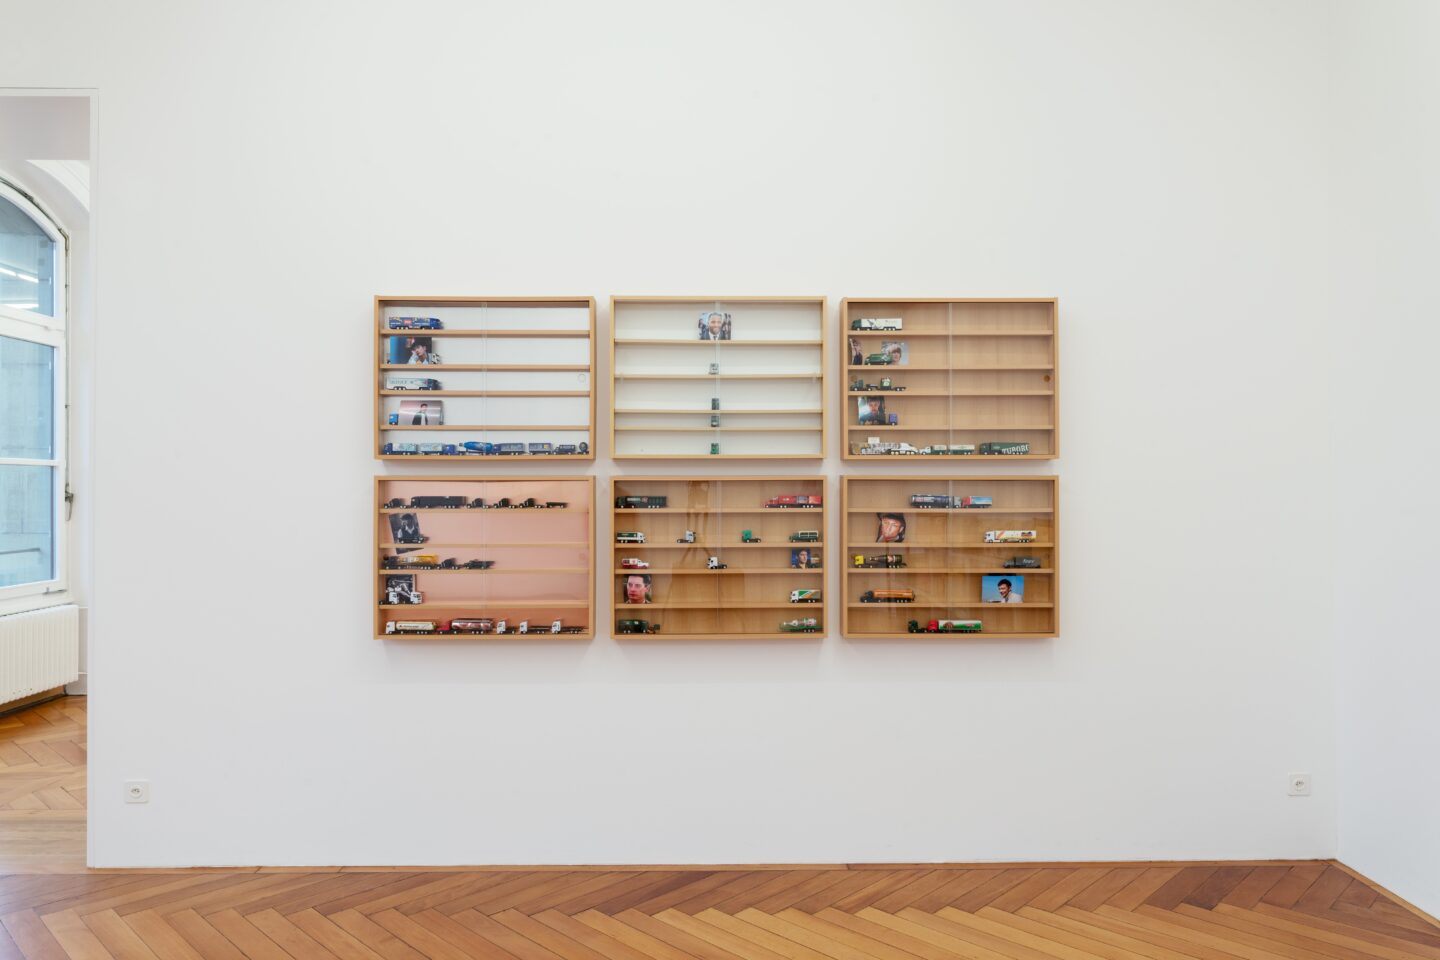 Exhibition View Groupshow «Kasten; view on Pung-Tien Phan, Lil Emo, 2019» at Stadtgalerie, Bern, 2020 / Photo: CE / Courtesy: the artist and Stadtgalerie, Bern